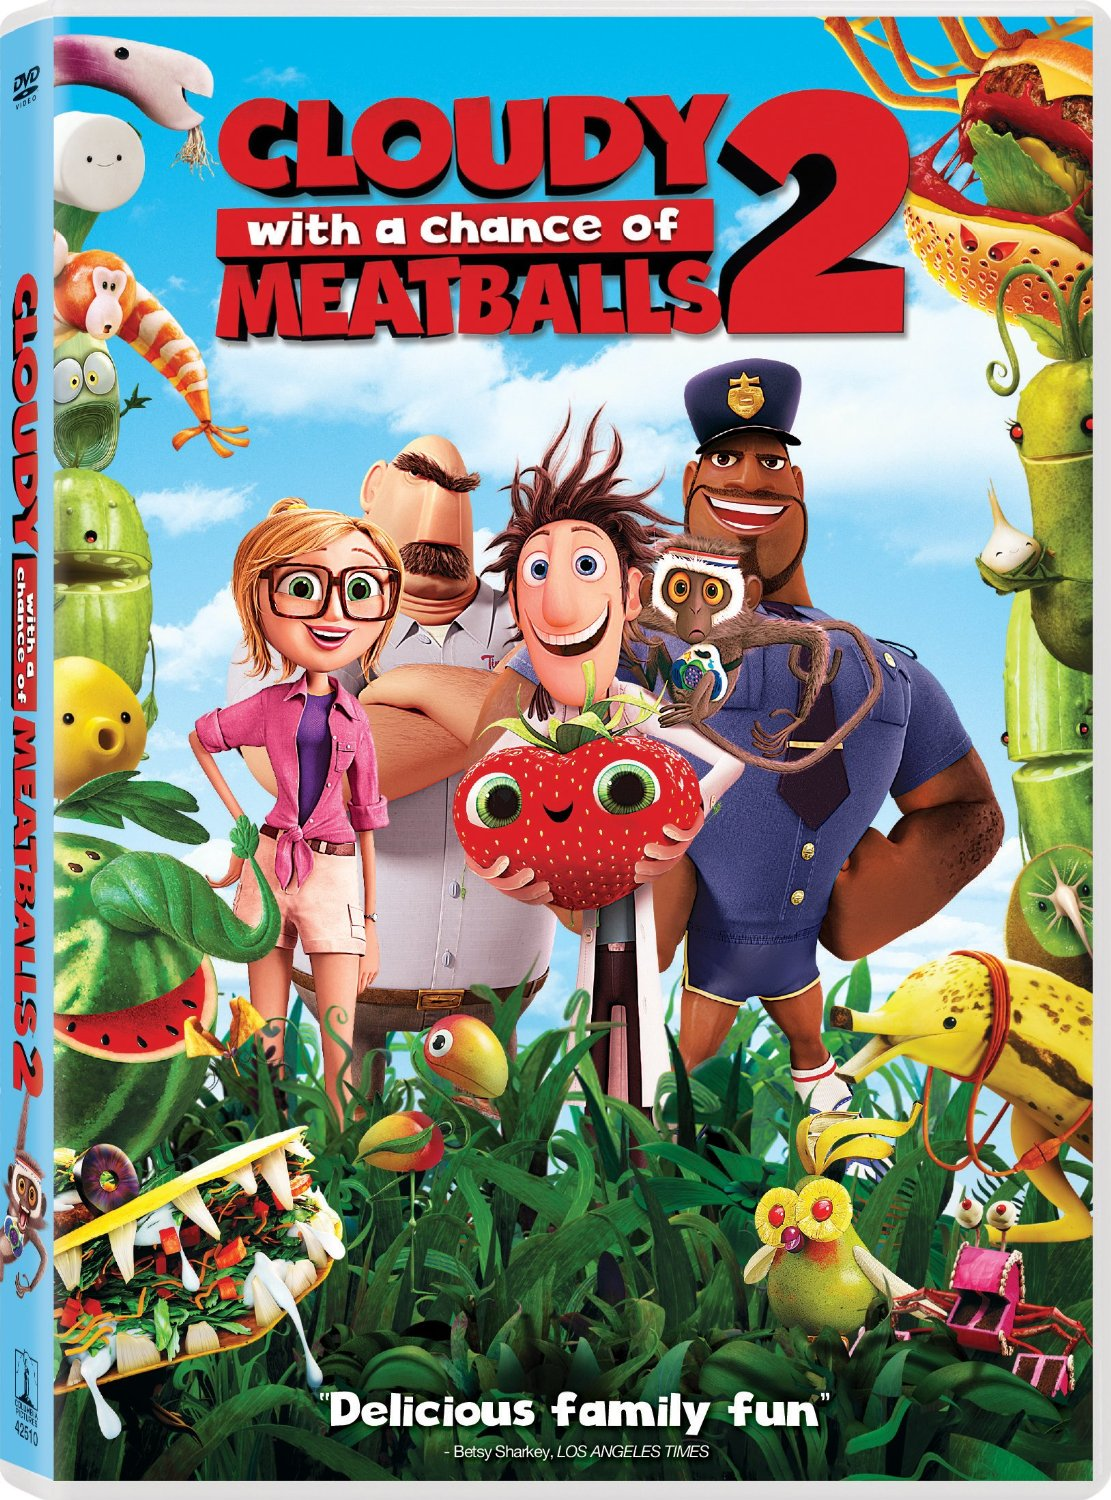 Cloudy With A Chance Of Meatballs 2 Movie HD free download 720p